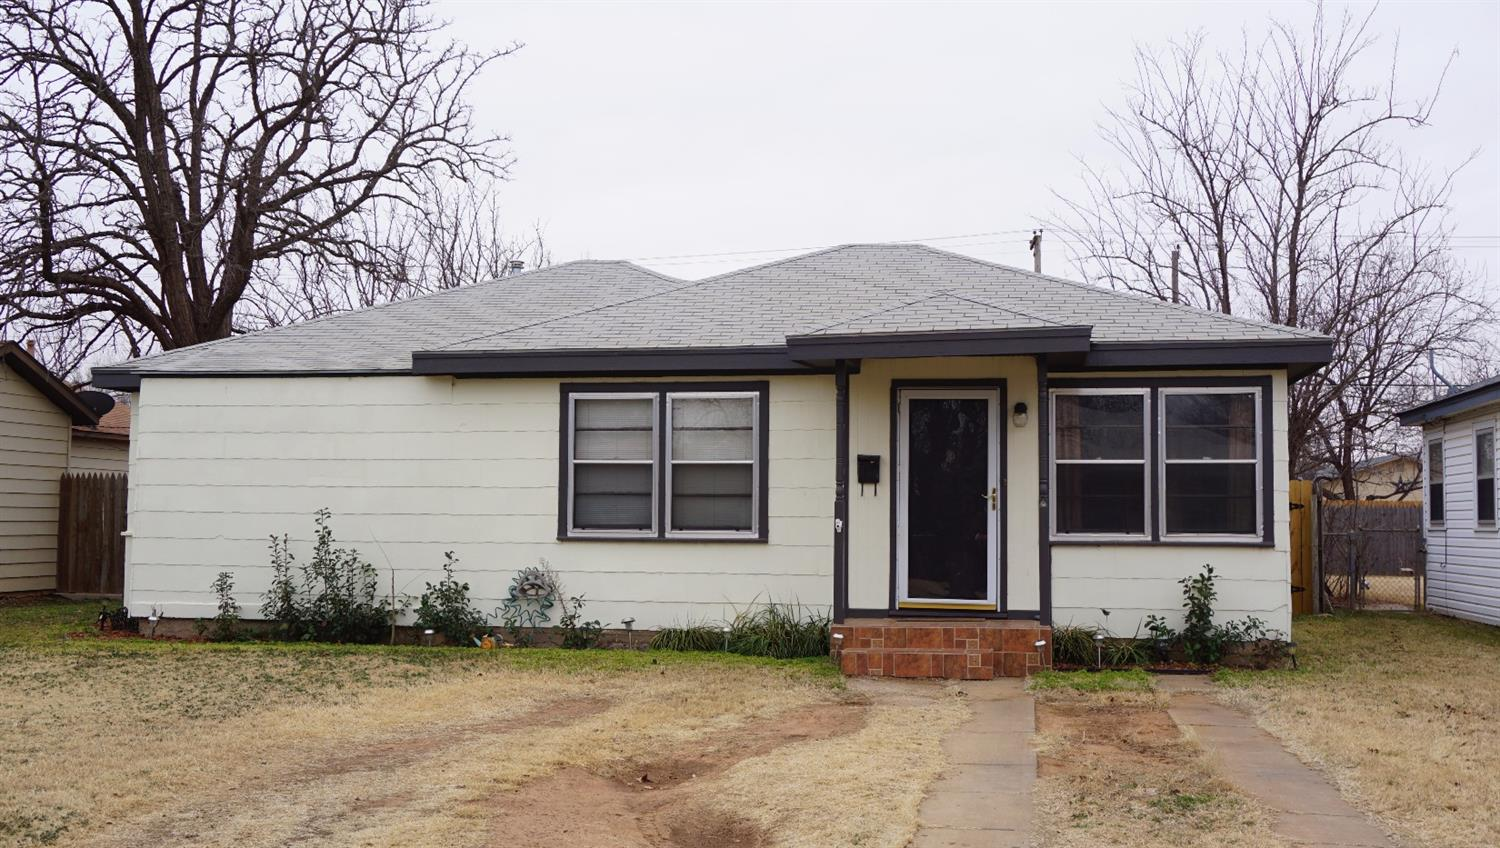 2005 64th Street, Lubbock in Lubbock County, TX 79412 Home for Sale